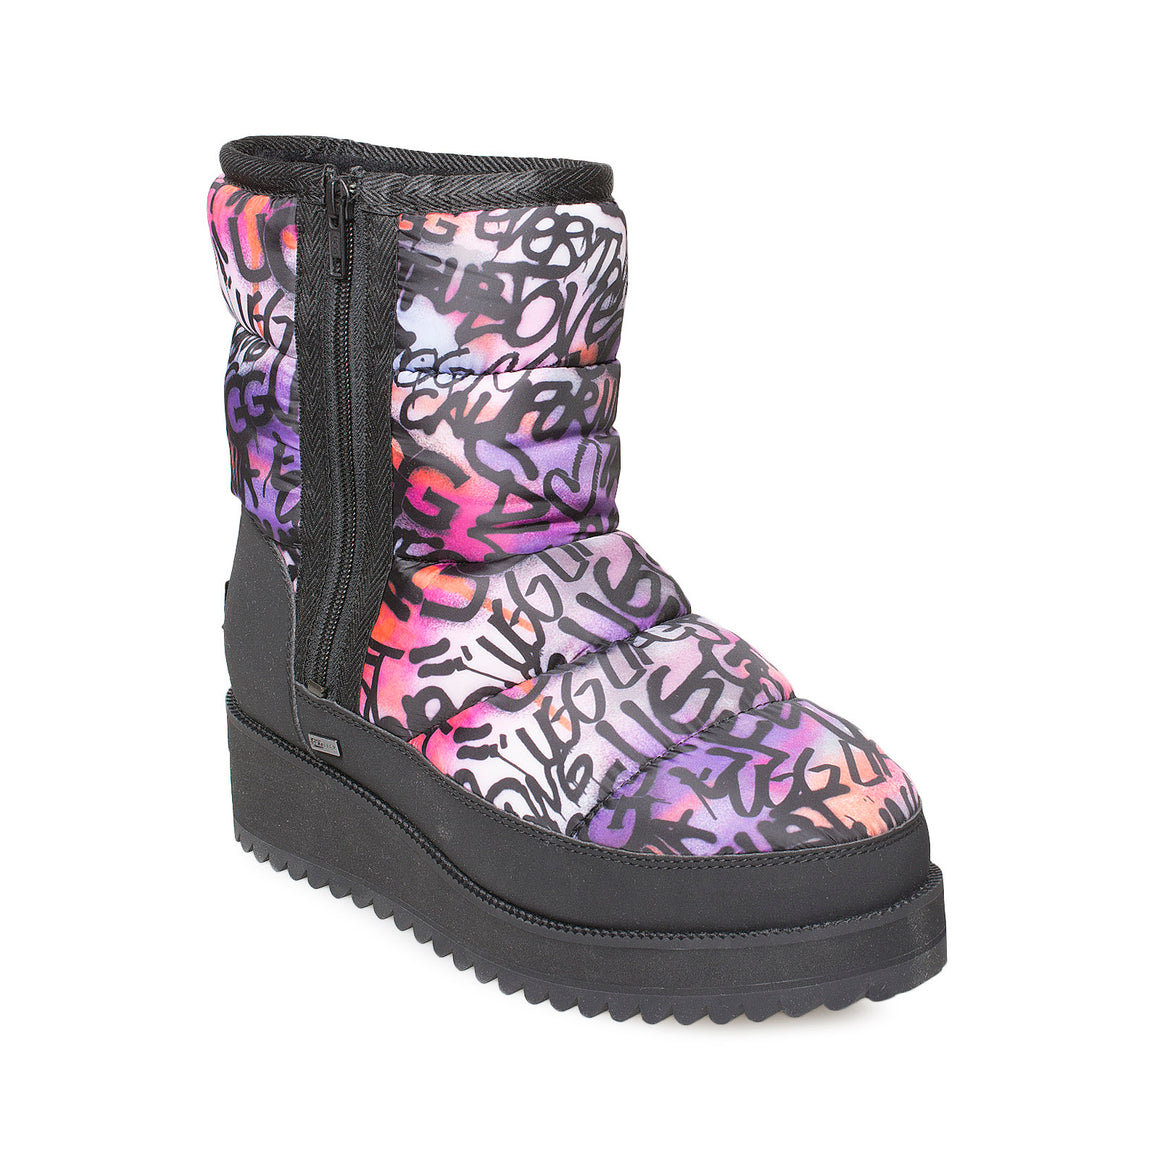 UGG Ridge Graffiti Pop Multi Boots - Women's